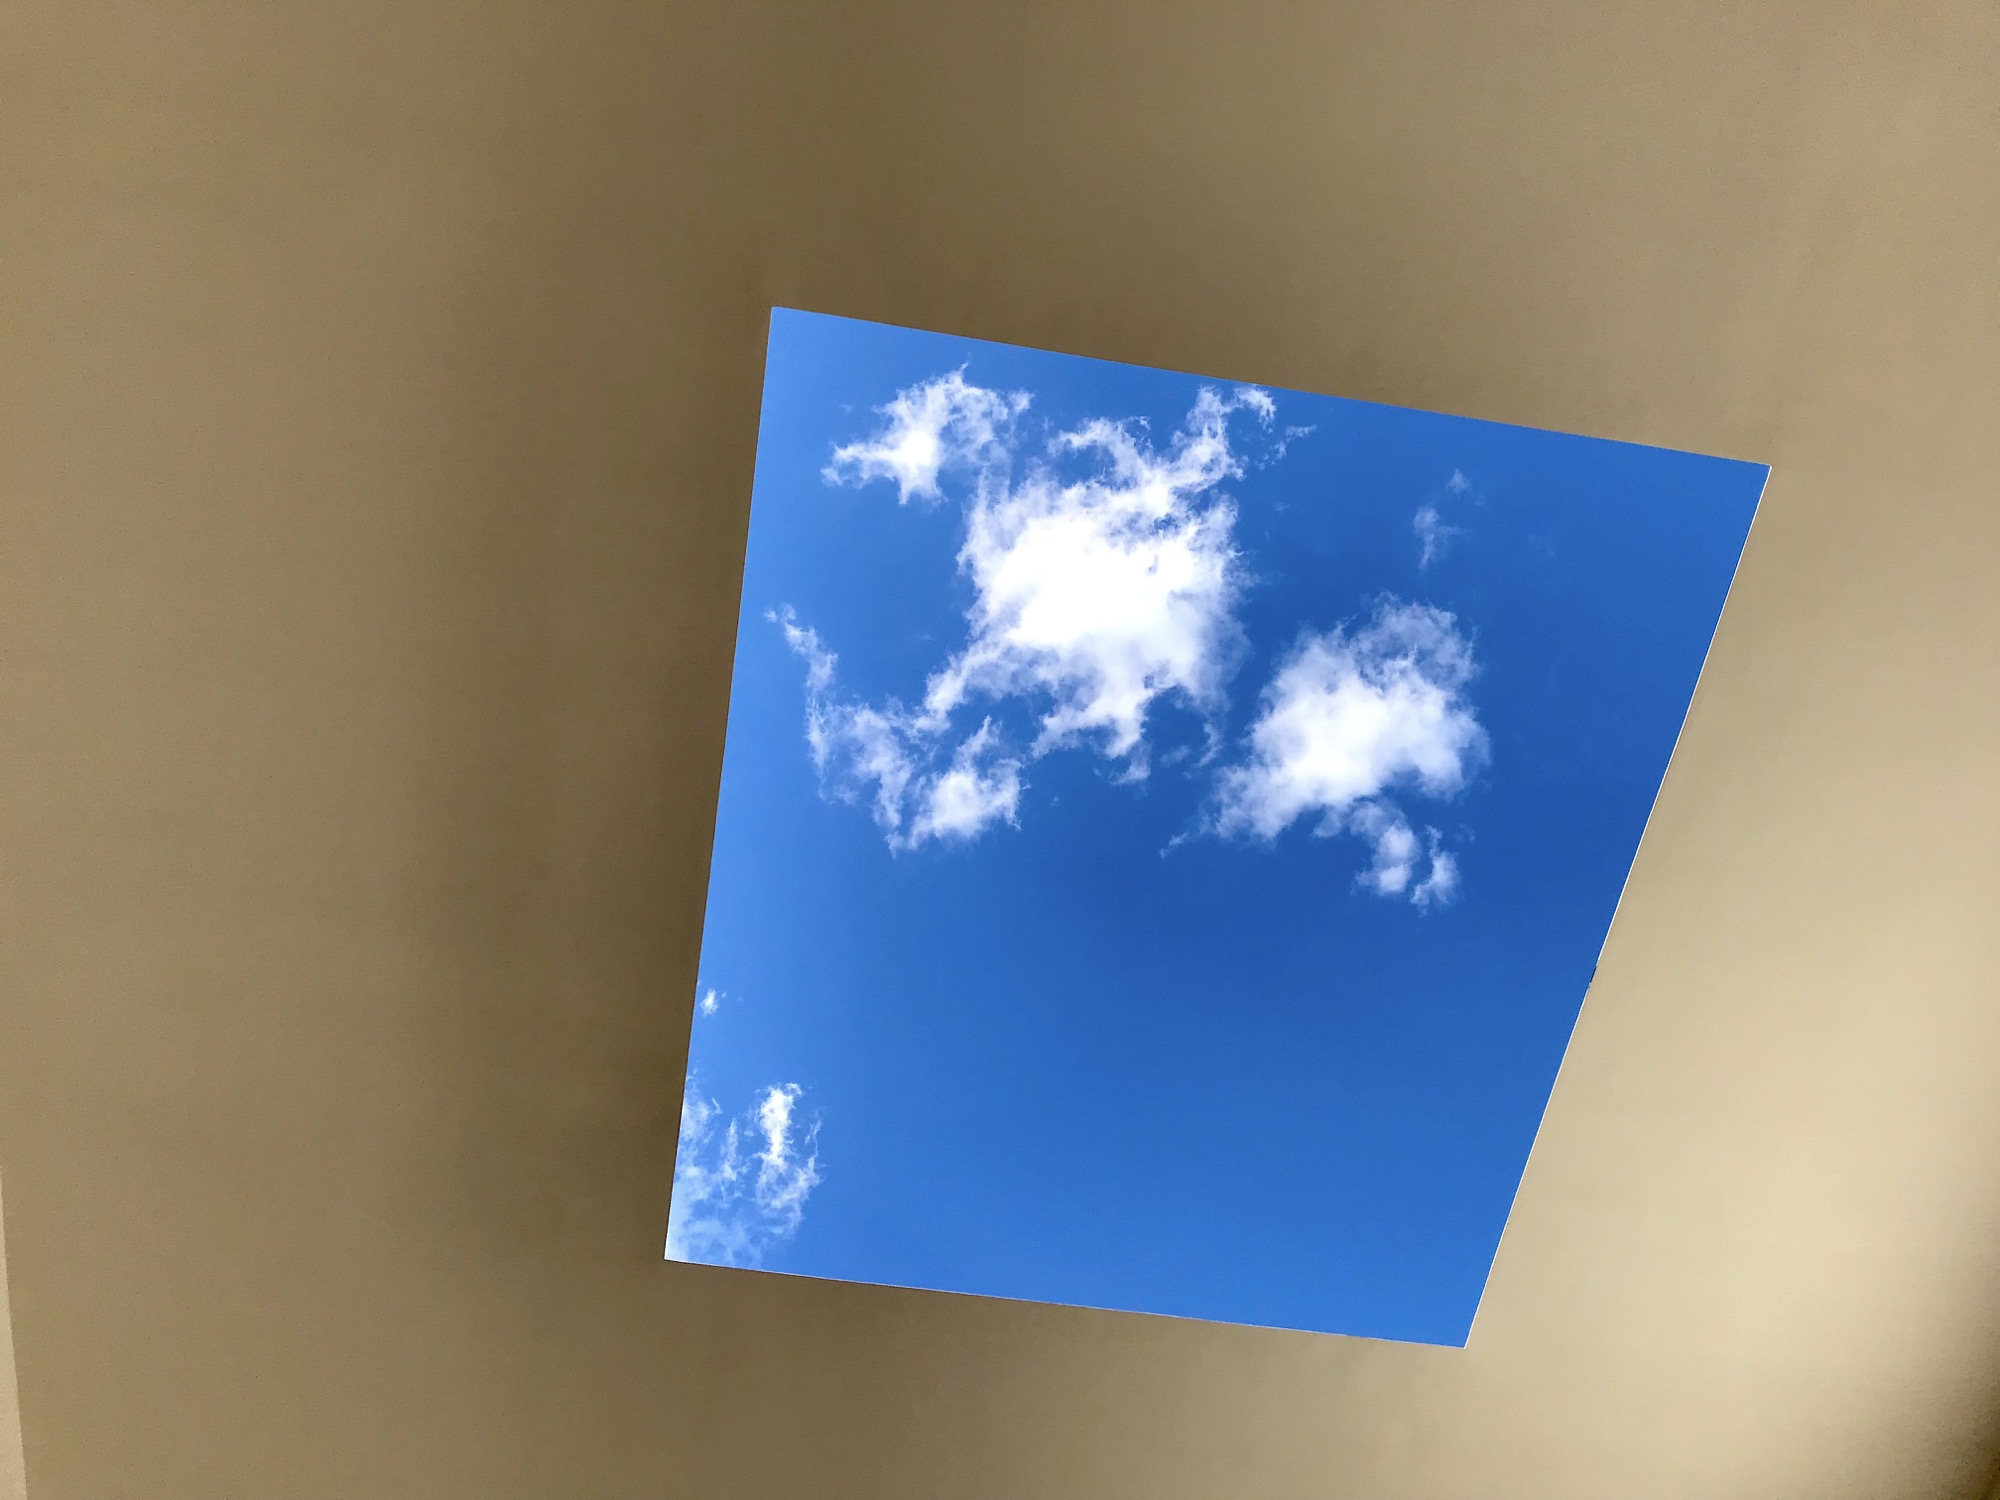 Photo of James Turrell's Meeting, 1980-86/2016 at MoMA PS1